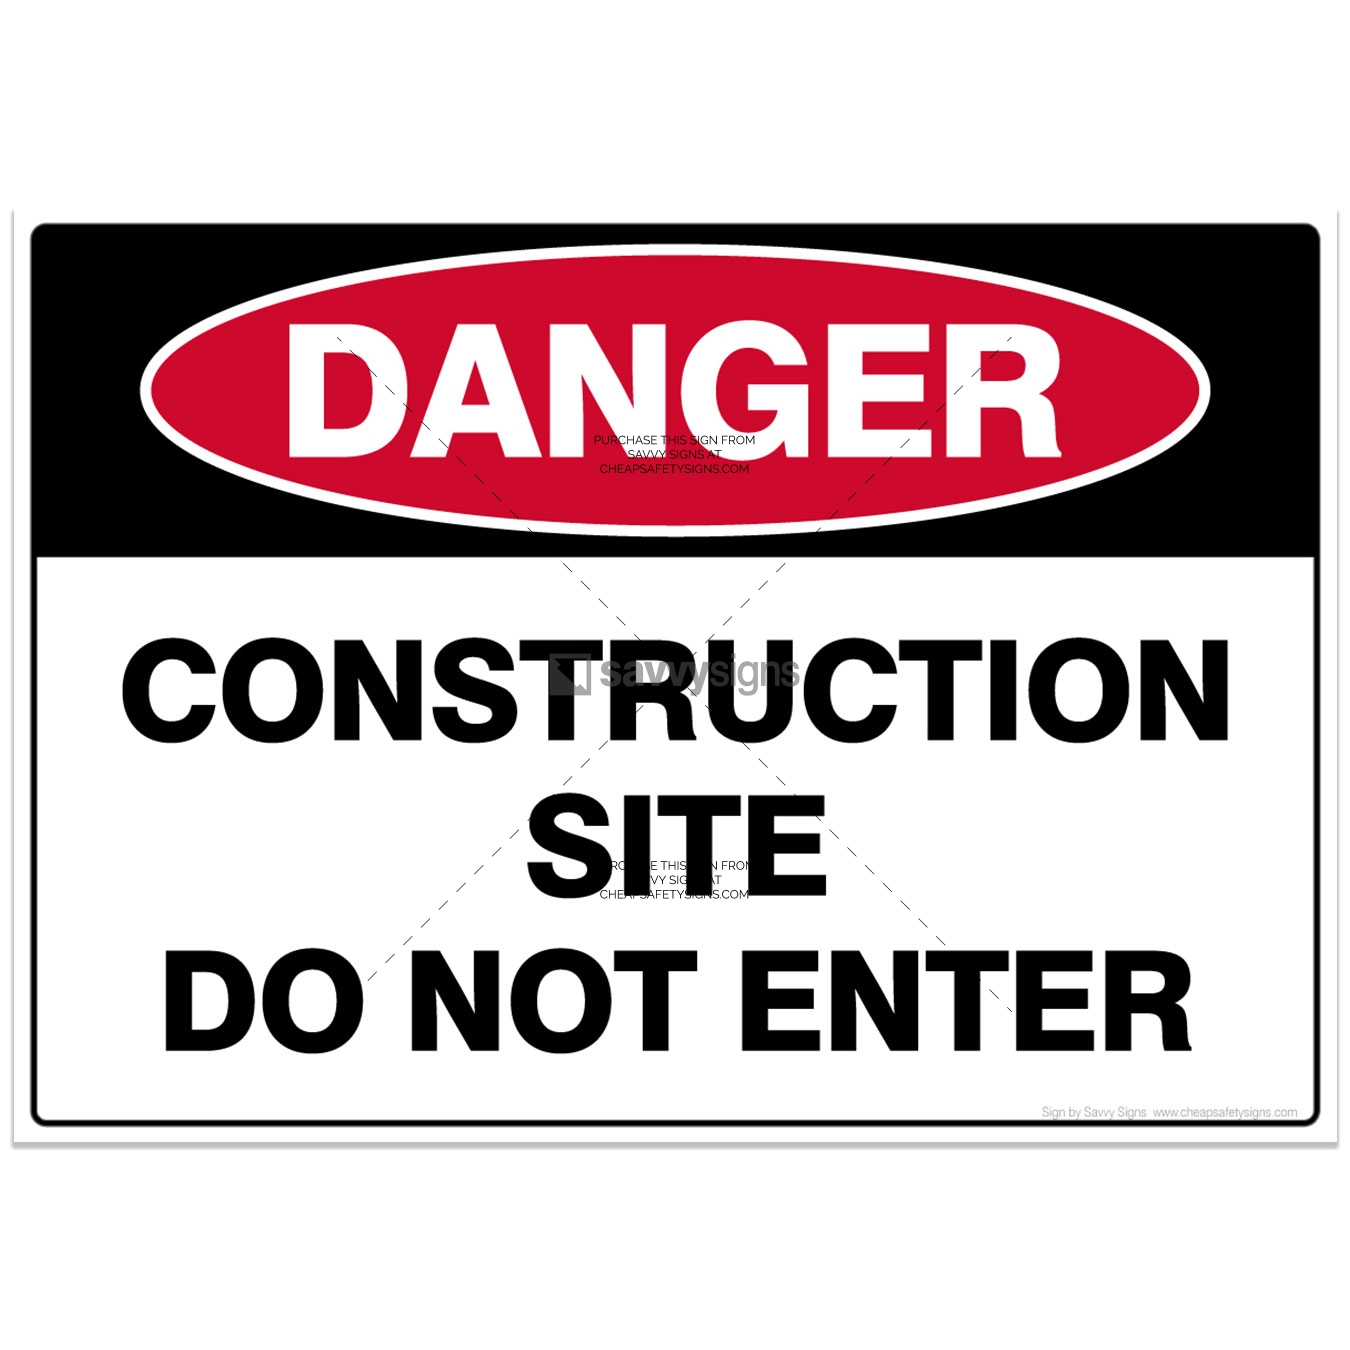 SSDAN3068-DANGER-Workplace-Safety-Signs_Savvy-Signs_v4.1